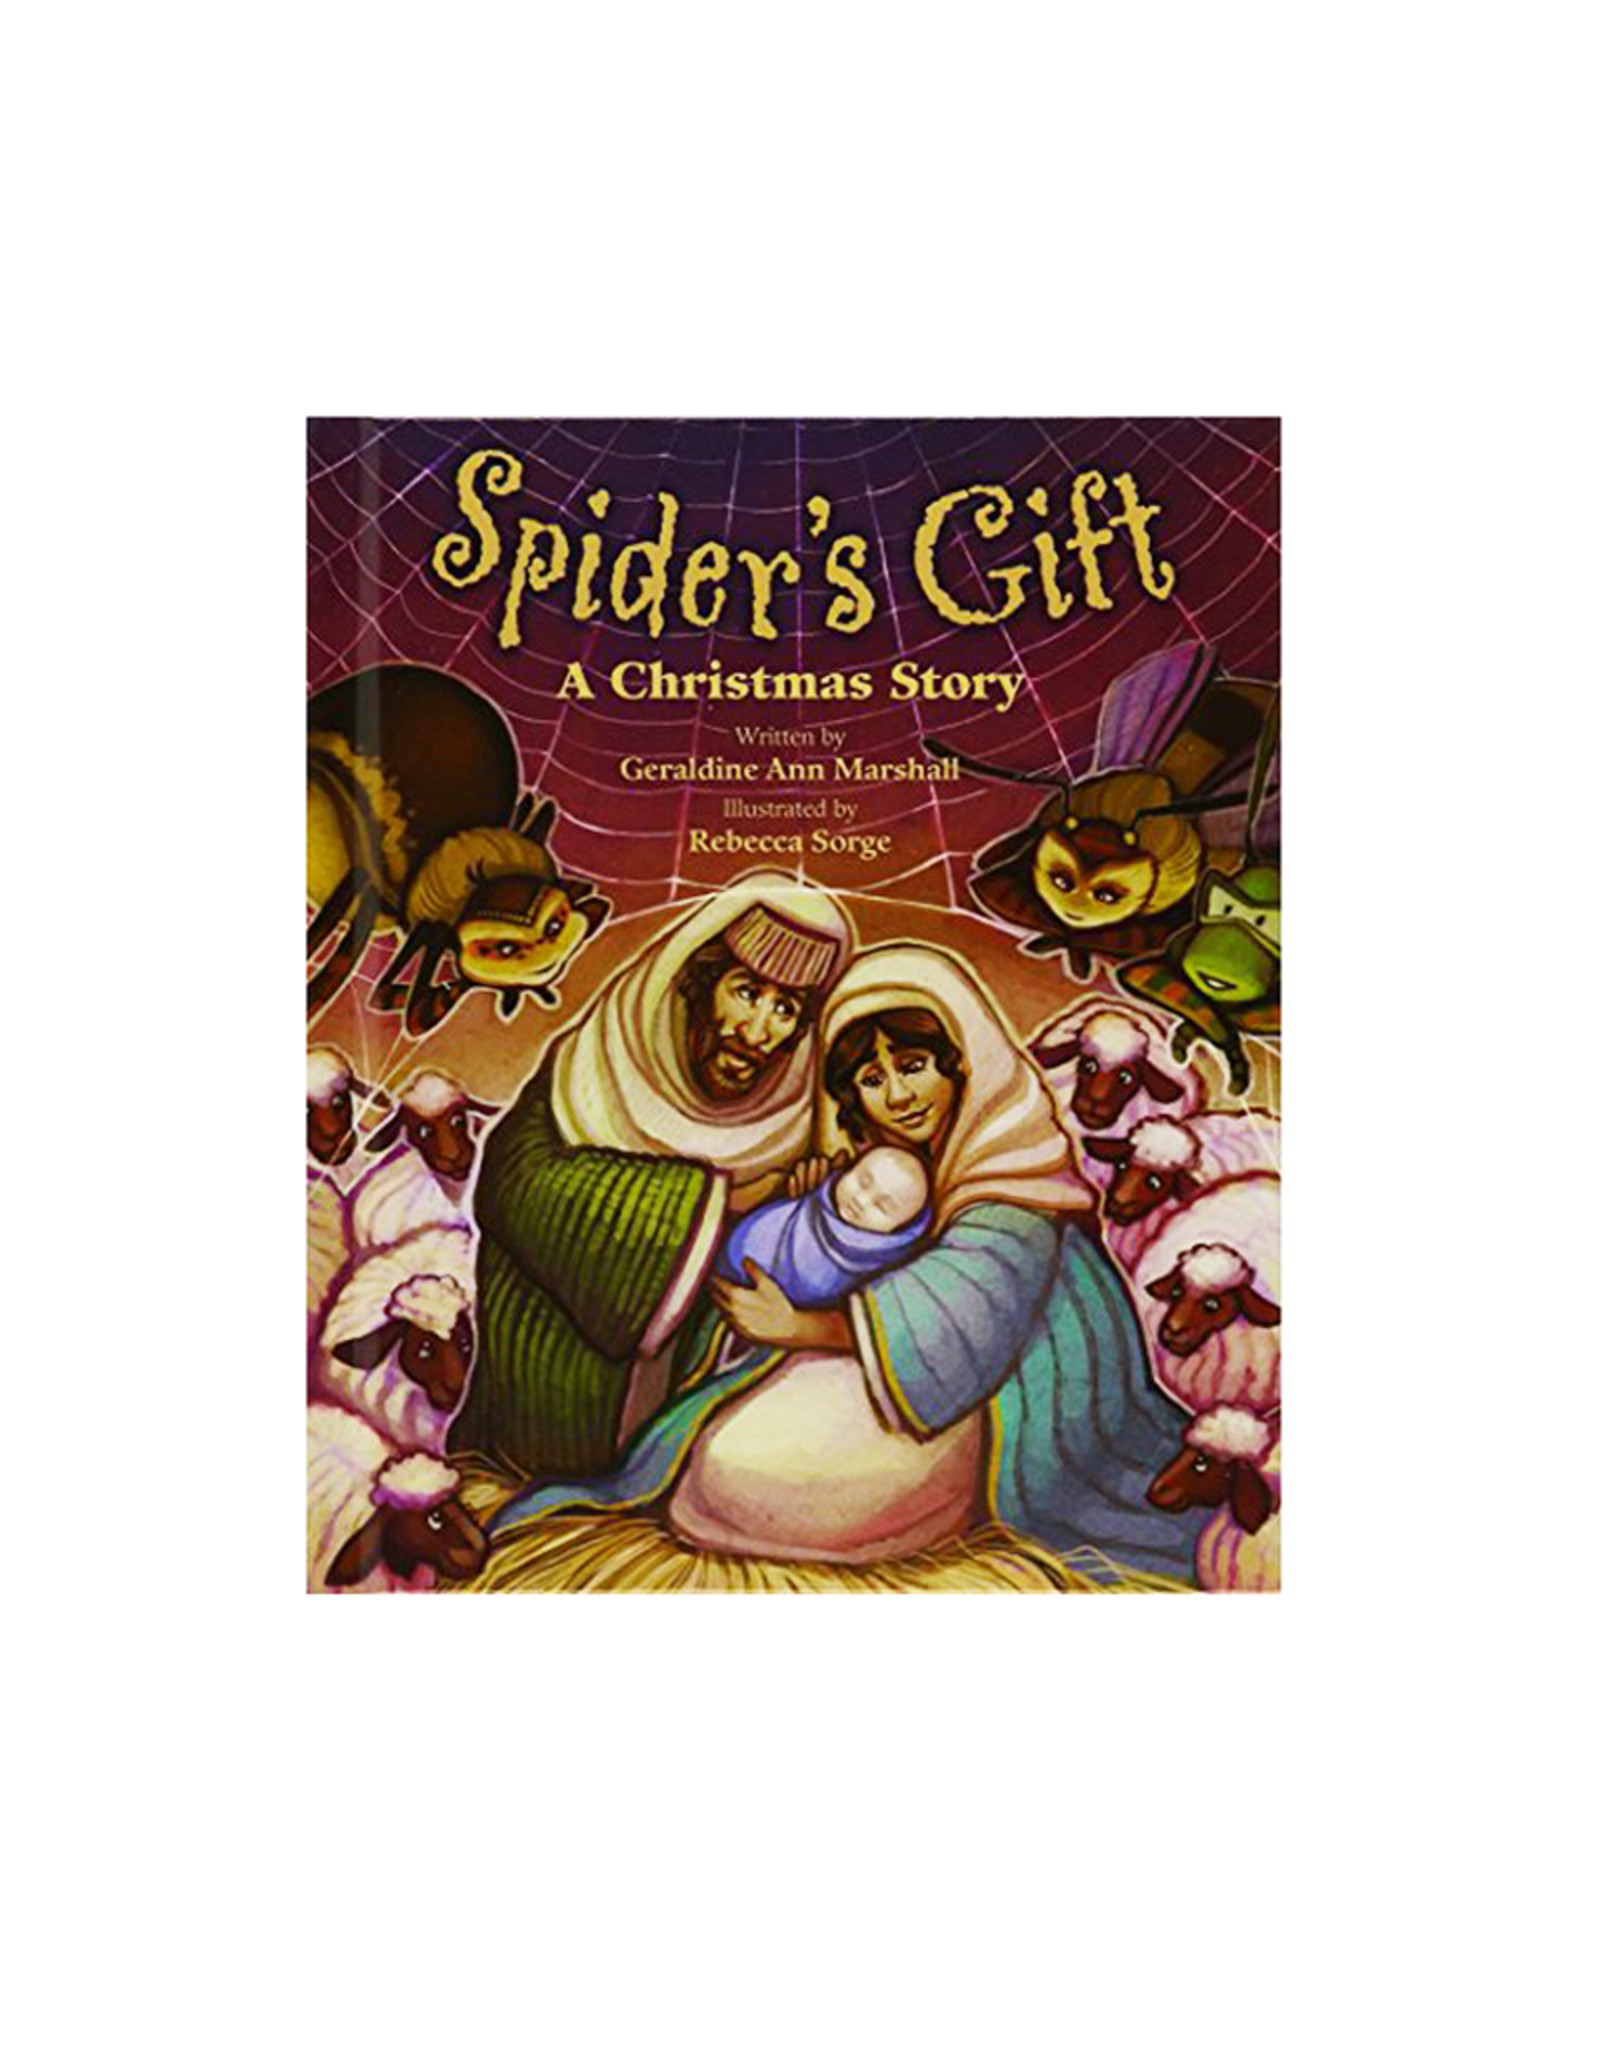 Spider's Gift A Christmas Story